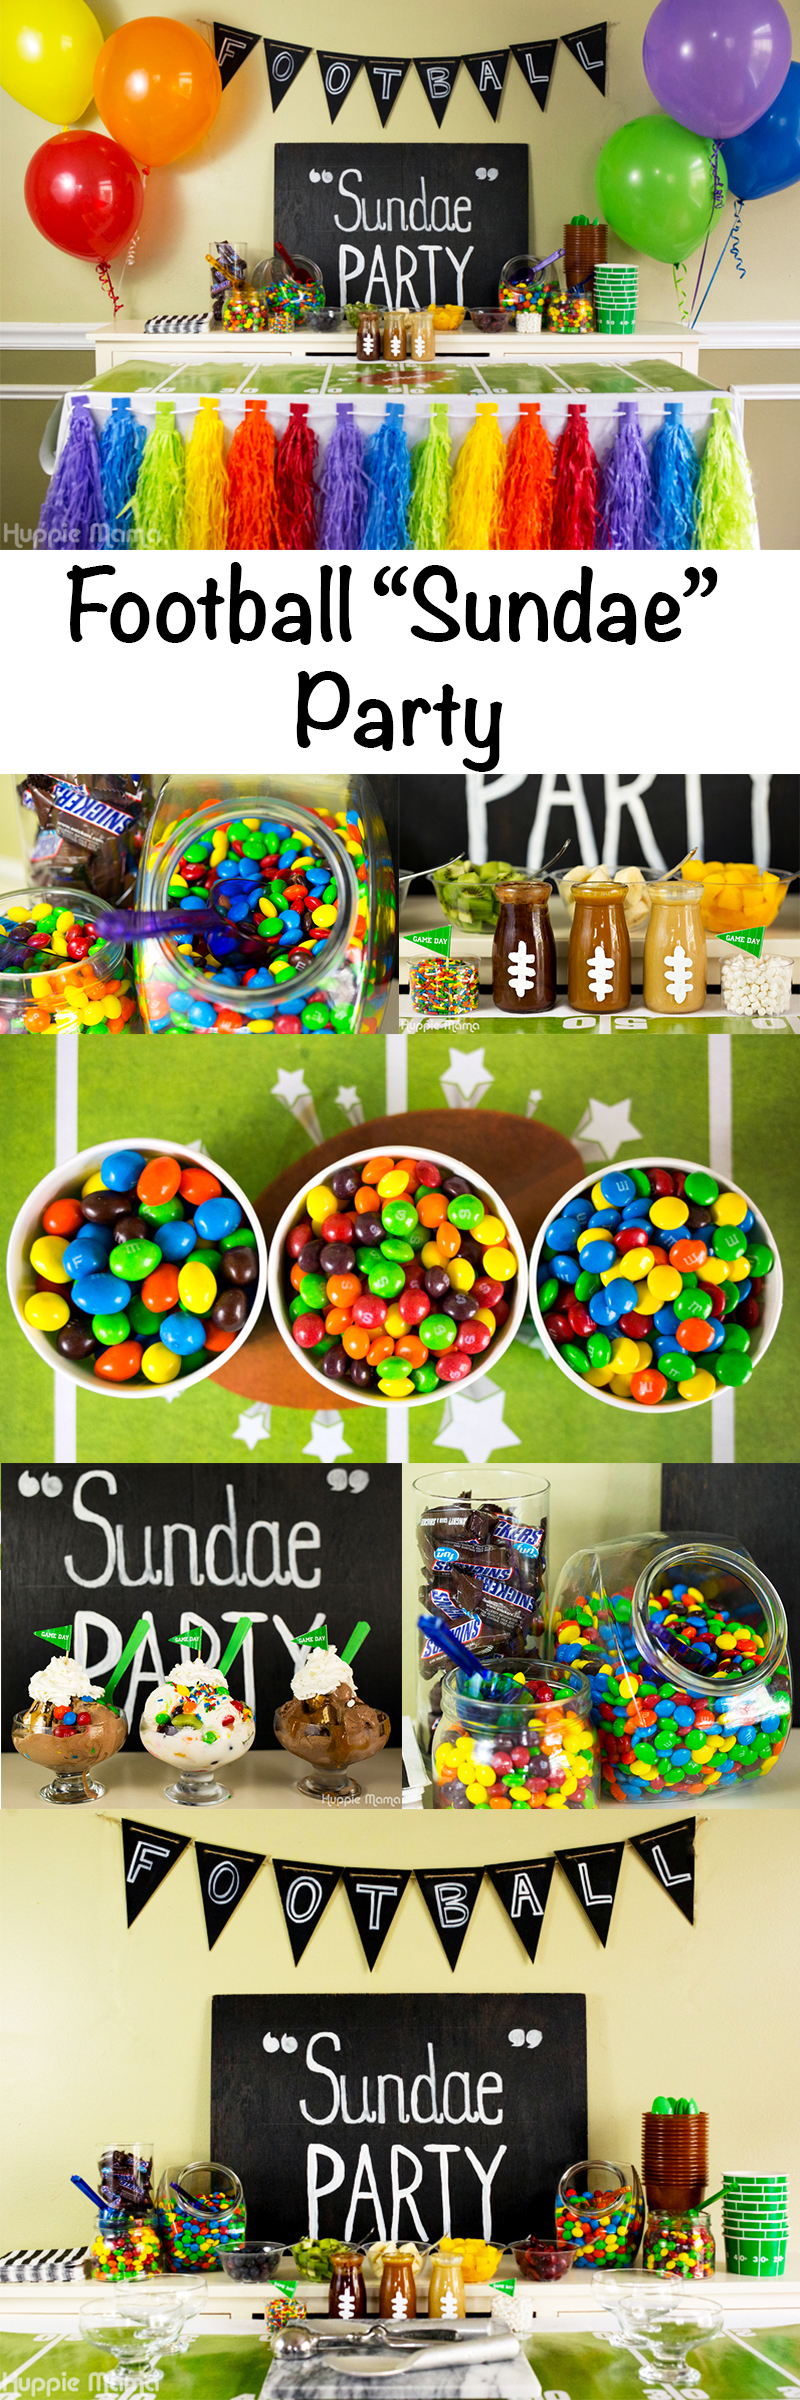 Football sundae party idea